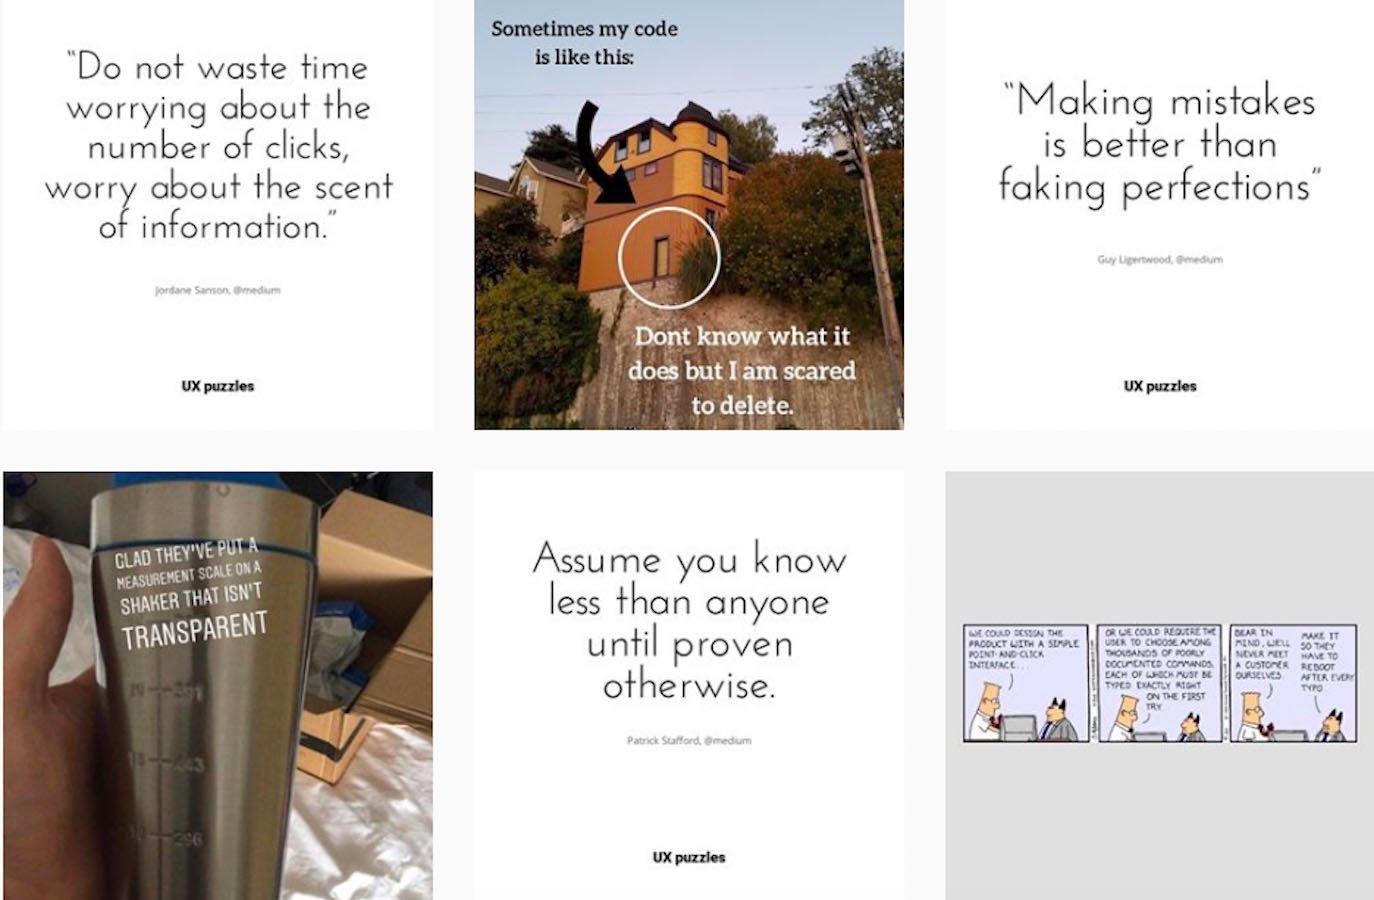 Web Design Inspiration: 110+ Accounts On Instagram and 10+ Best UX & Web Design Books in 2020 - uxpuzzles